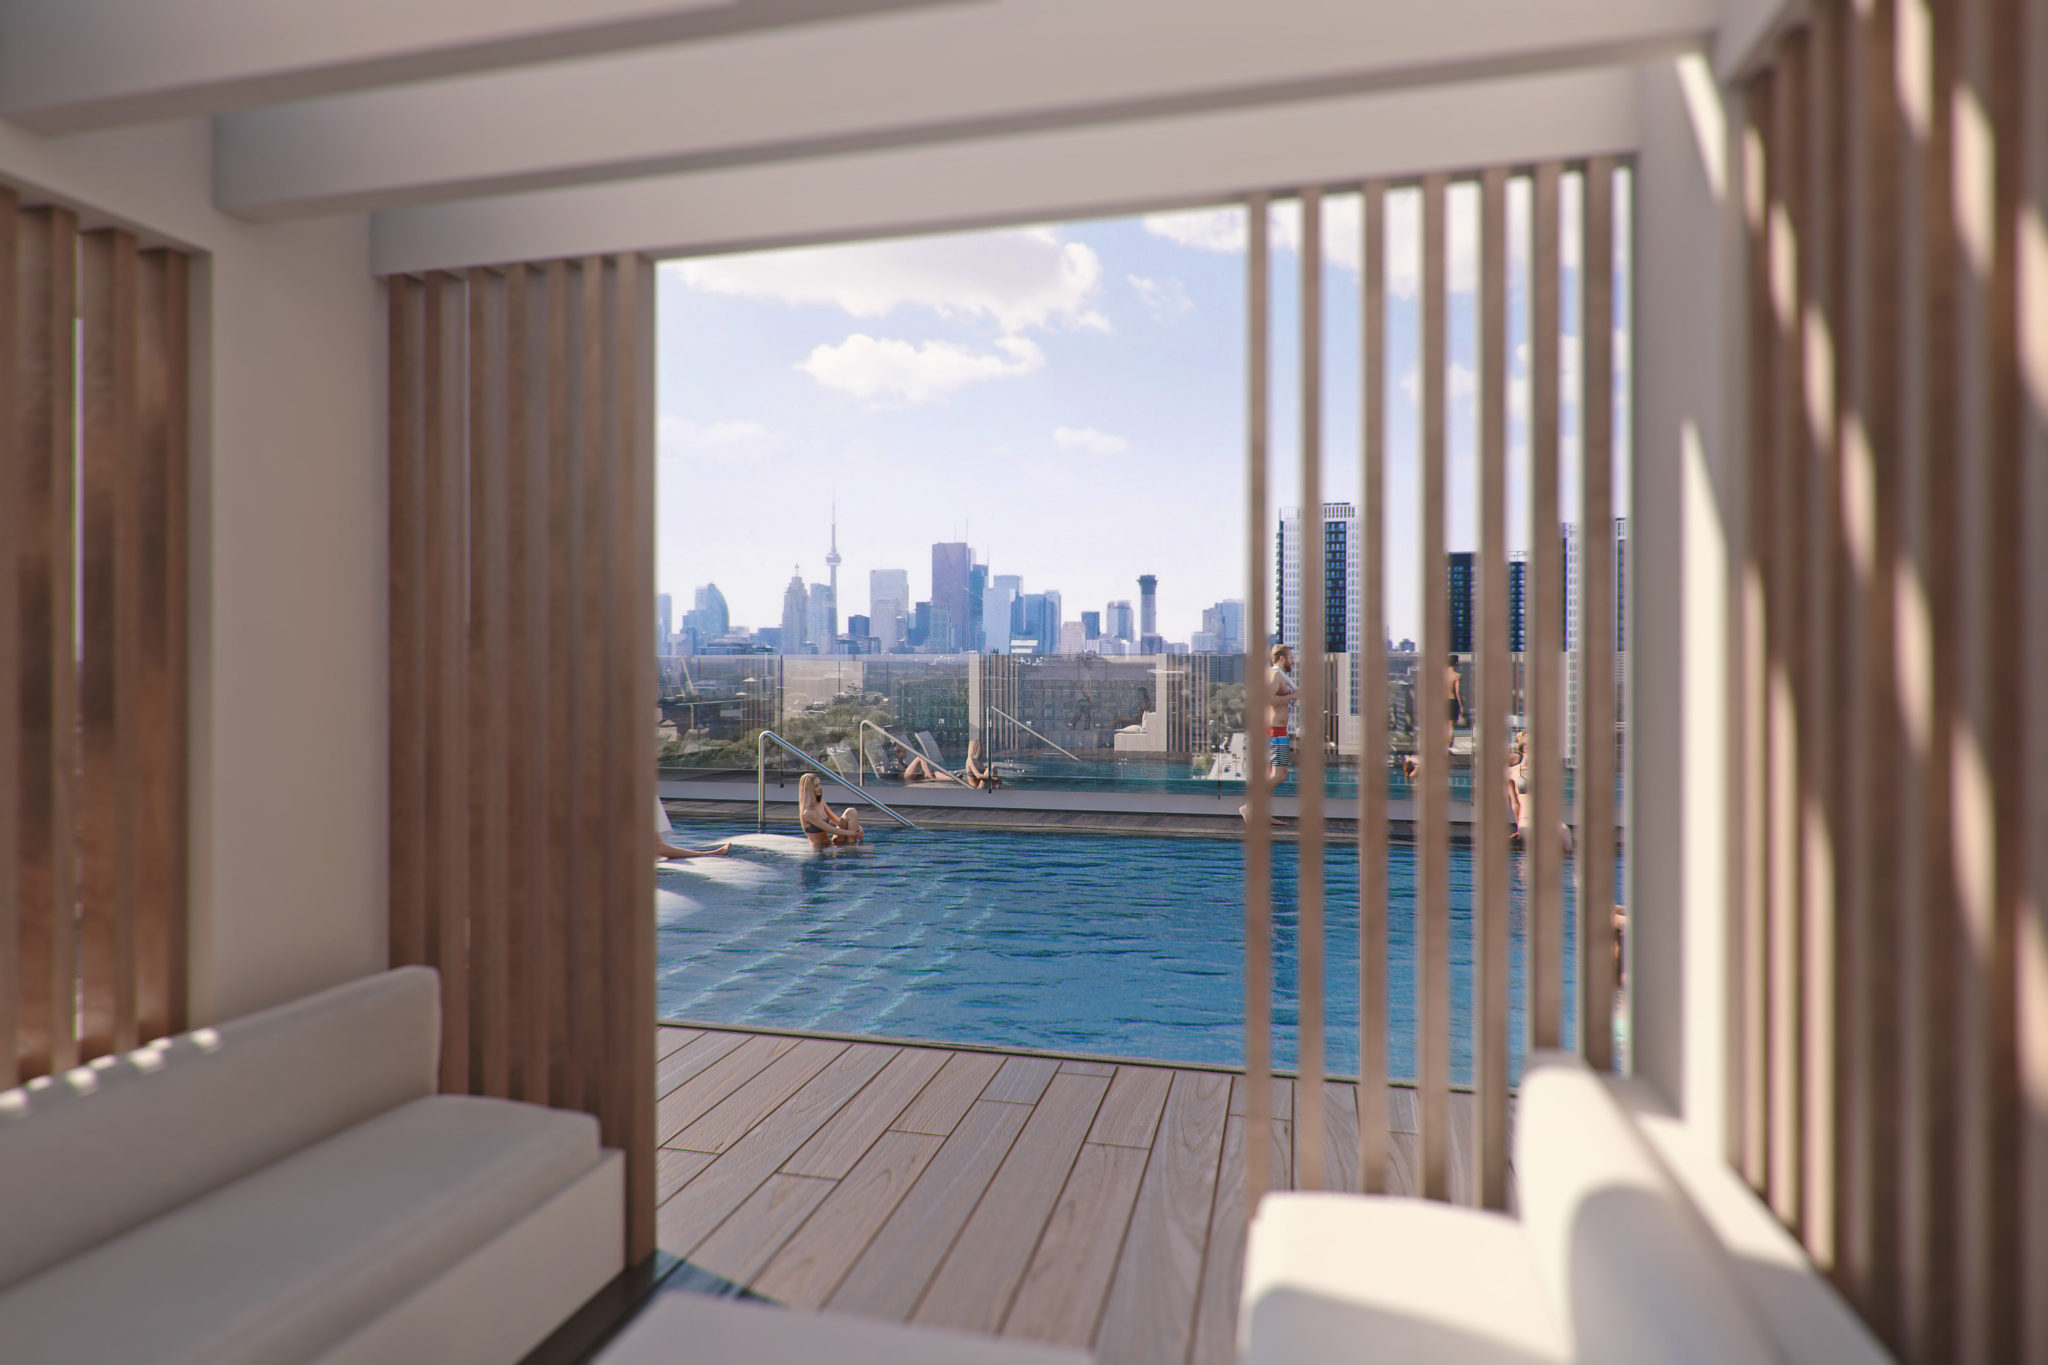 Rendering of rooftop pool amenity at River and Fifth Condos on 5 Defries St, Toronto.